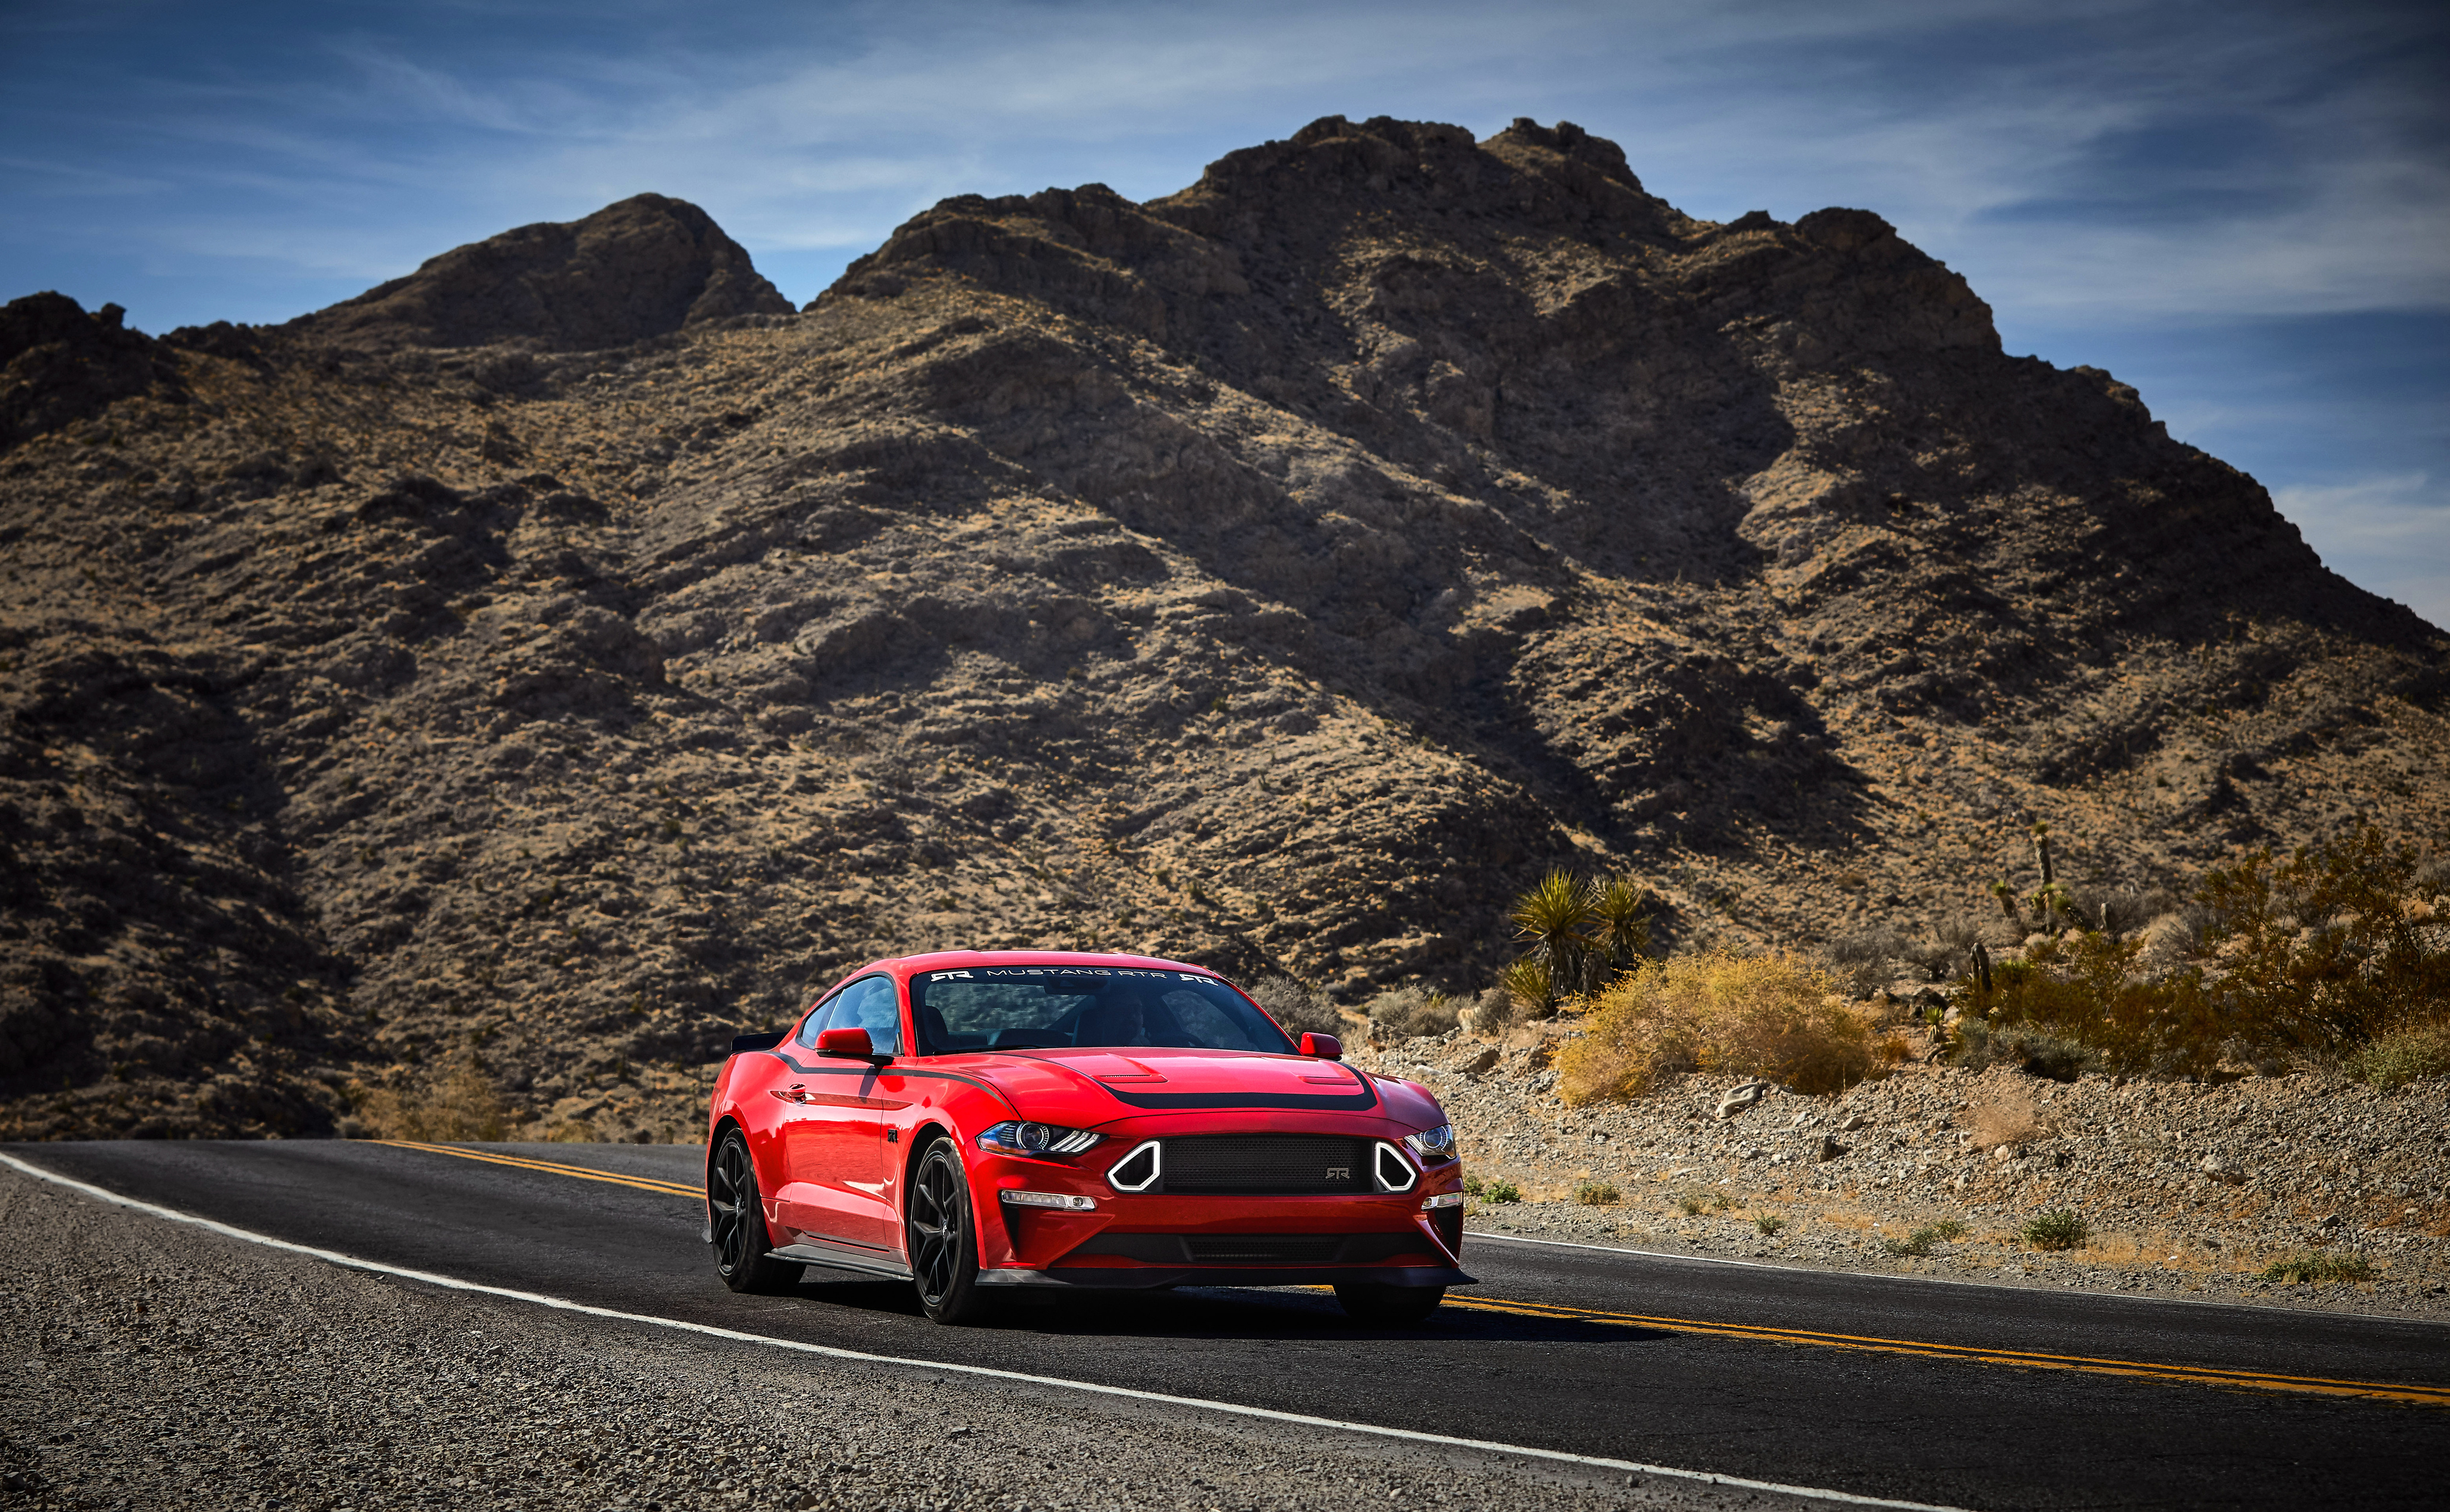 2019 Ford Series 1 Mustang RTR 4k, HD Cars, 4k Wallpapers ...